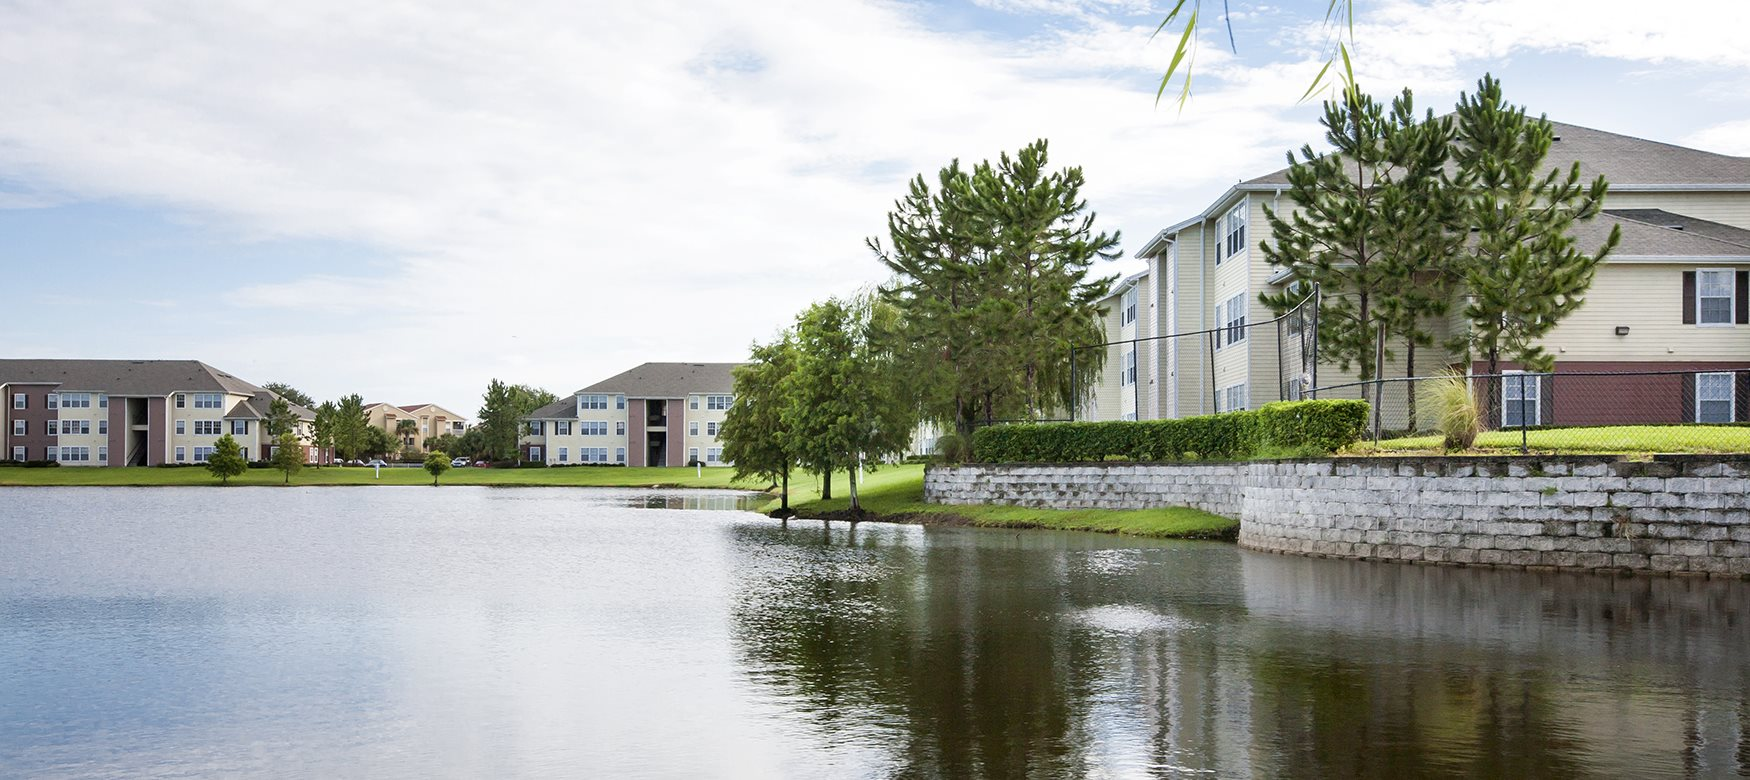 Lee Vista Apartments for rent in Orlando, FL. Make this community your new home or visit other ConcordRENTS communities at ConcordRENTS.com. Lake view